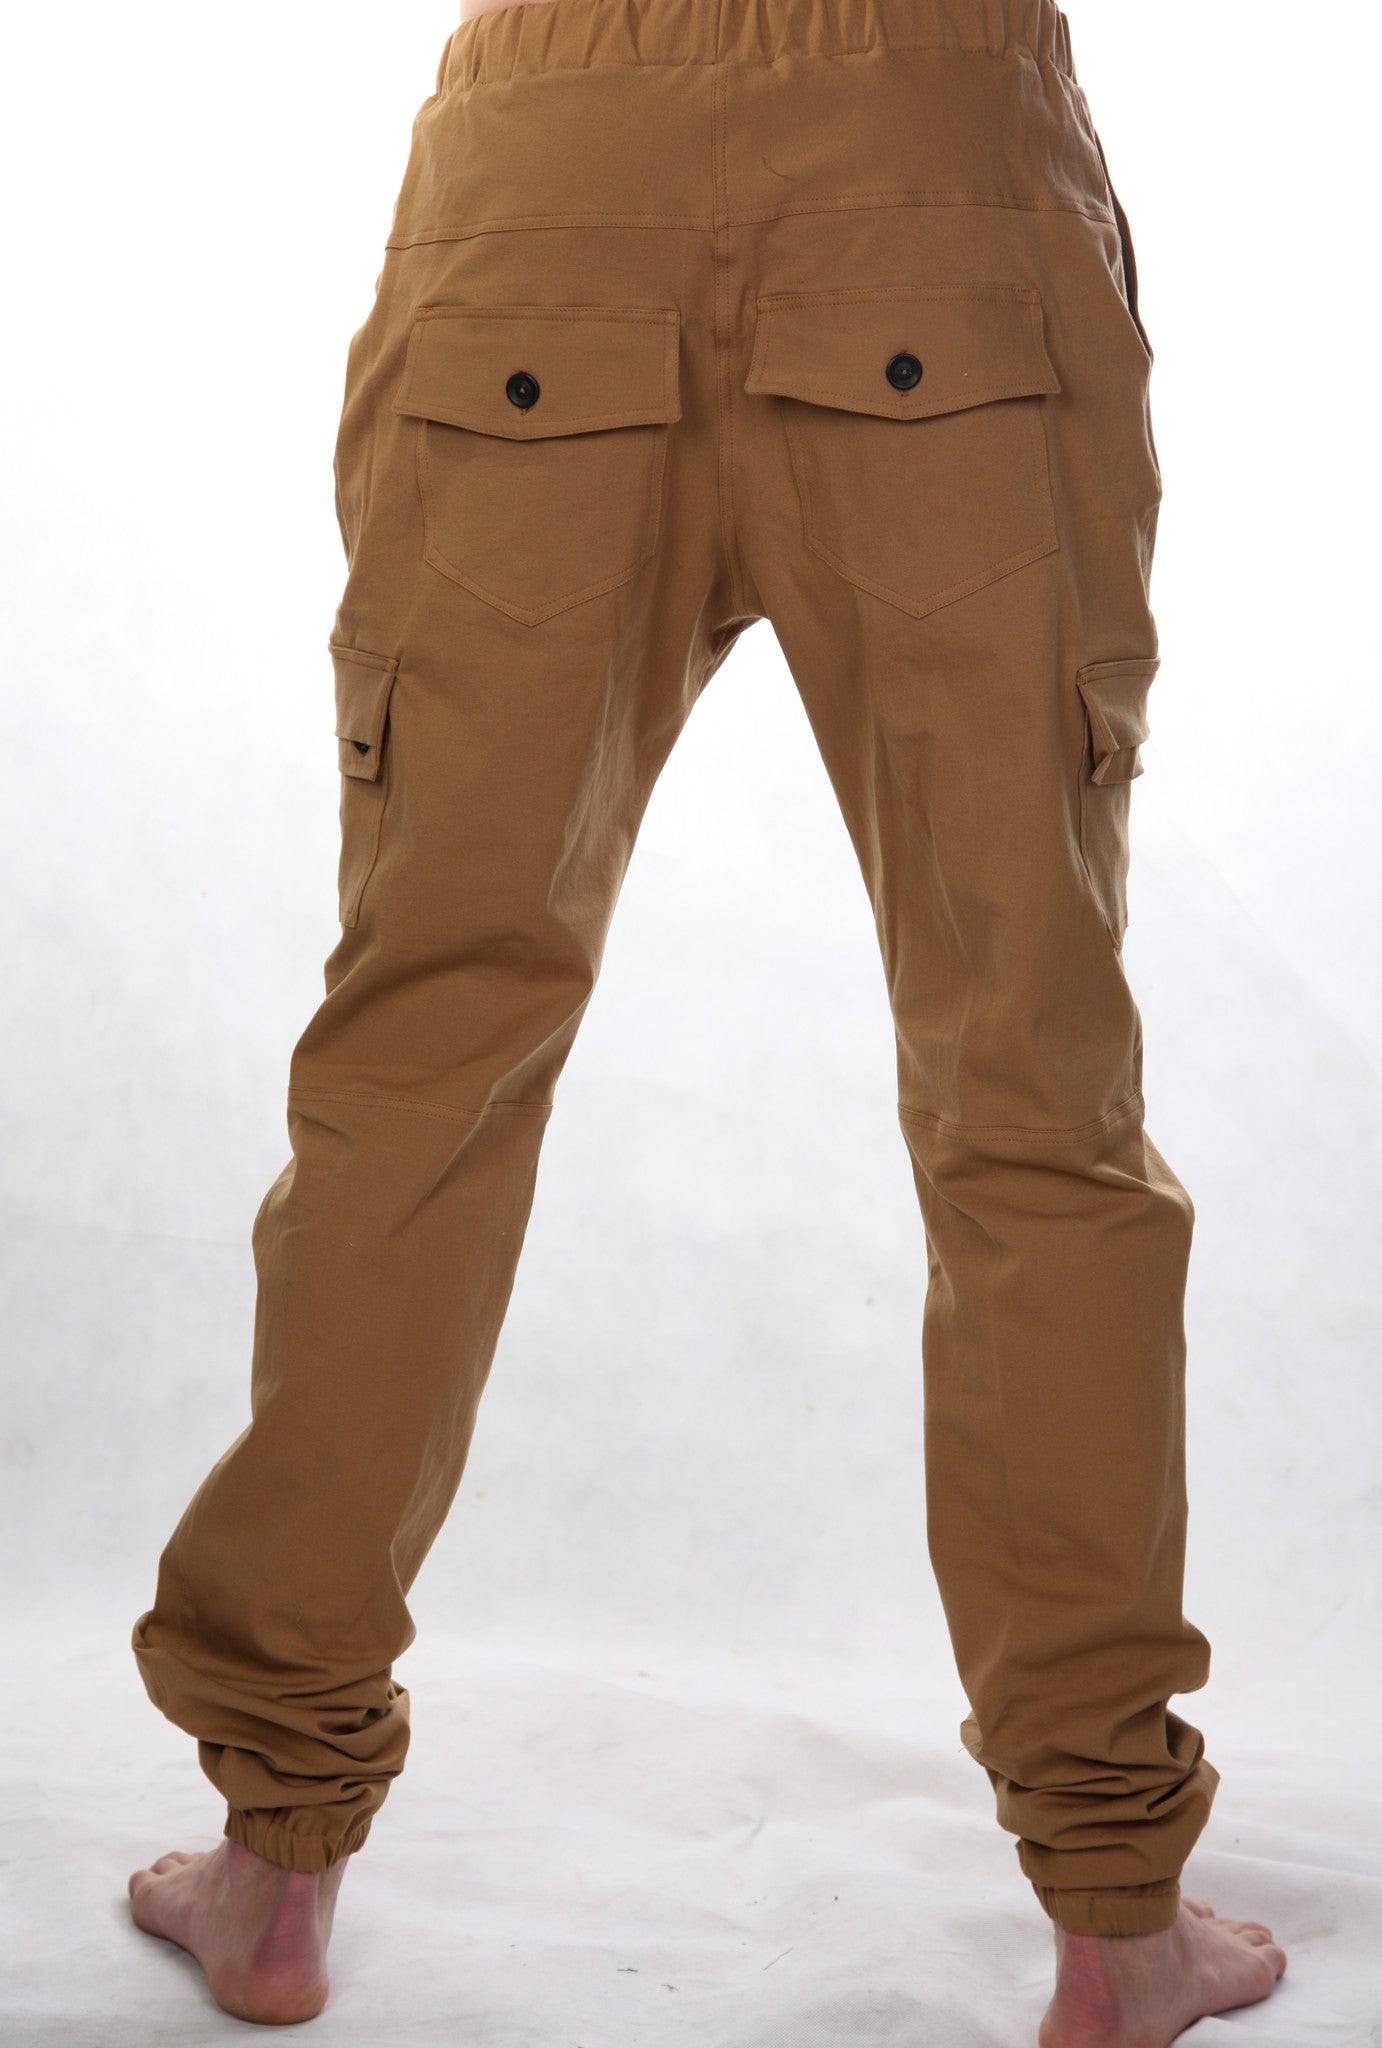 Streety Cargo Cuffs - Special Mustard colour 1 only